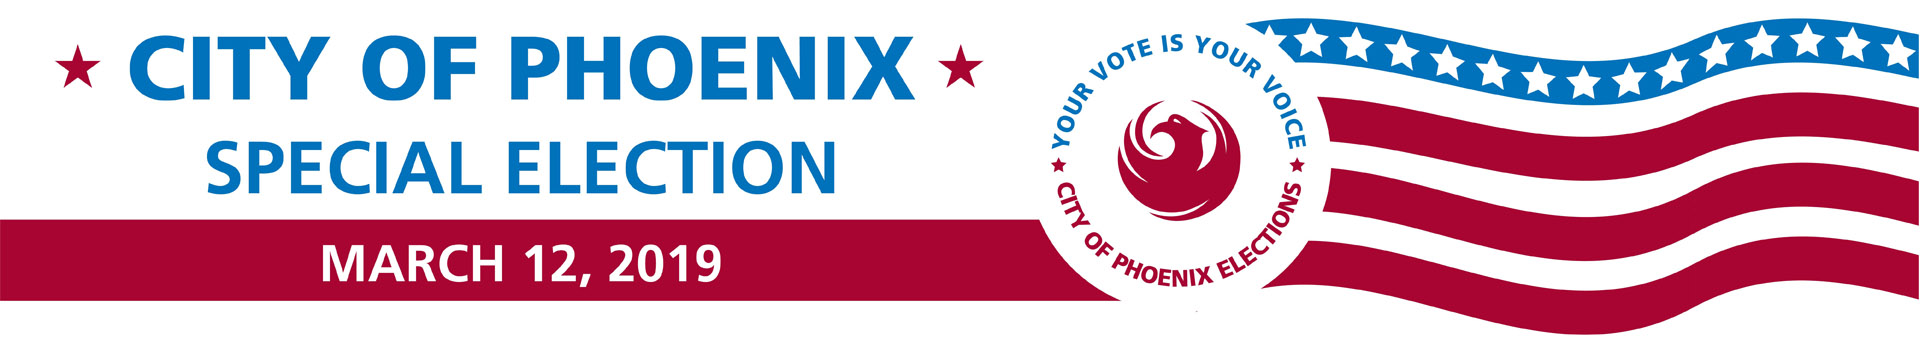 City of Phoenix, Special Elections, March 12, 2019